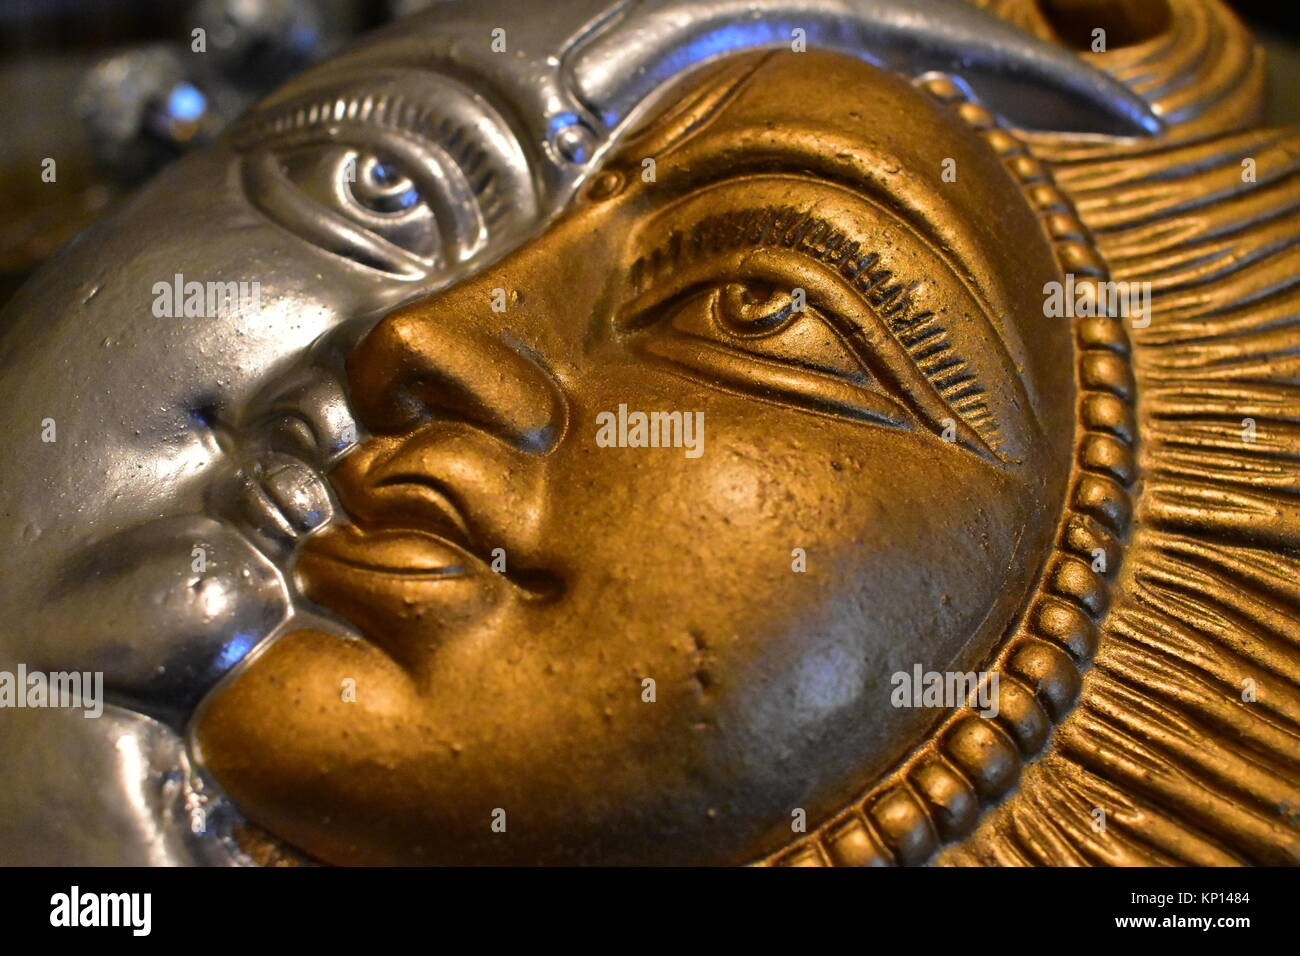 A golden and silver painted clay artifact symbolizing the sun and moon. Stock Photo